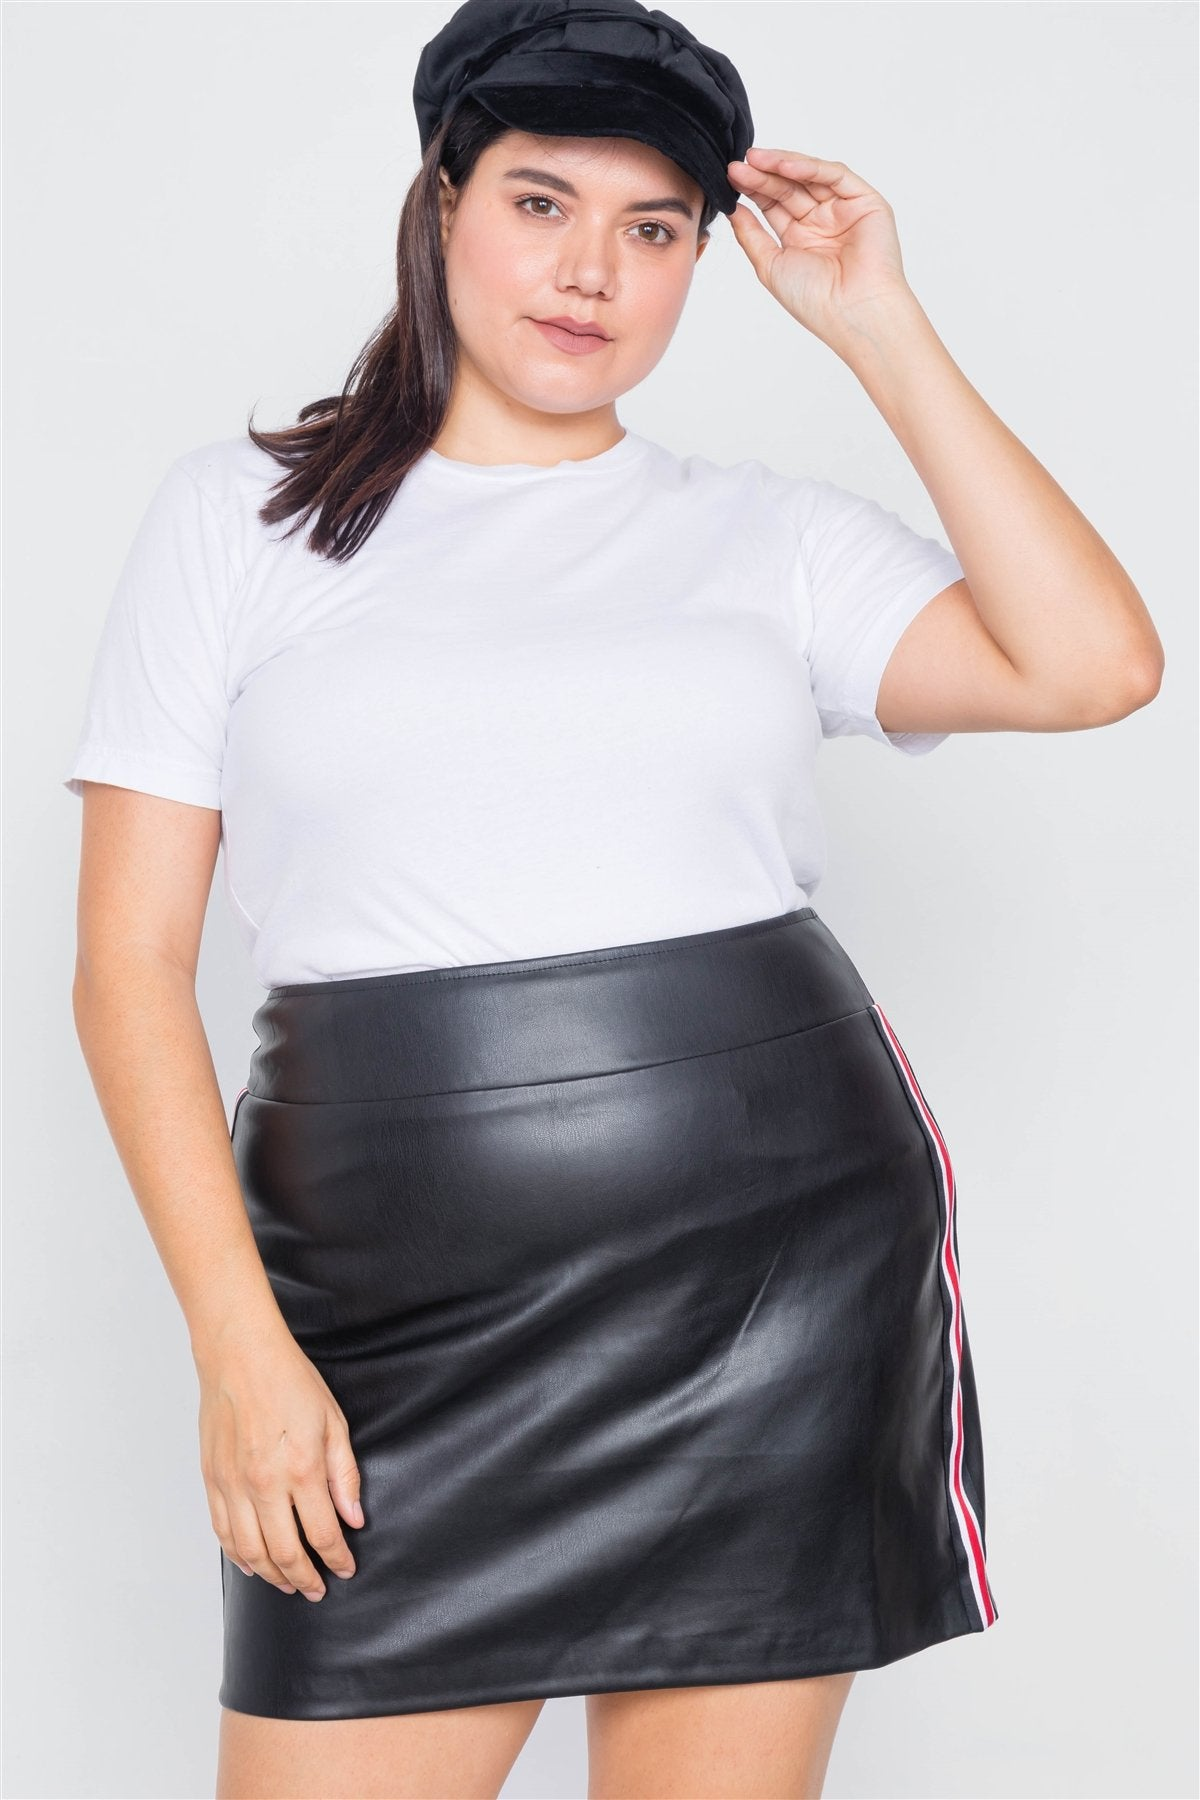 slaythedaybydcole,Black Leather Mini Skirt W/ Color Block Trim,Slay The Day By D Cole,